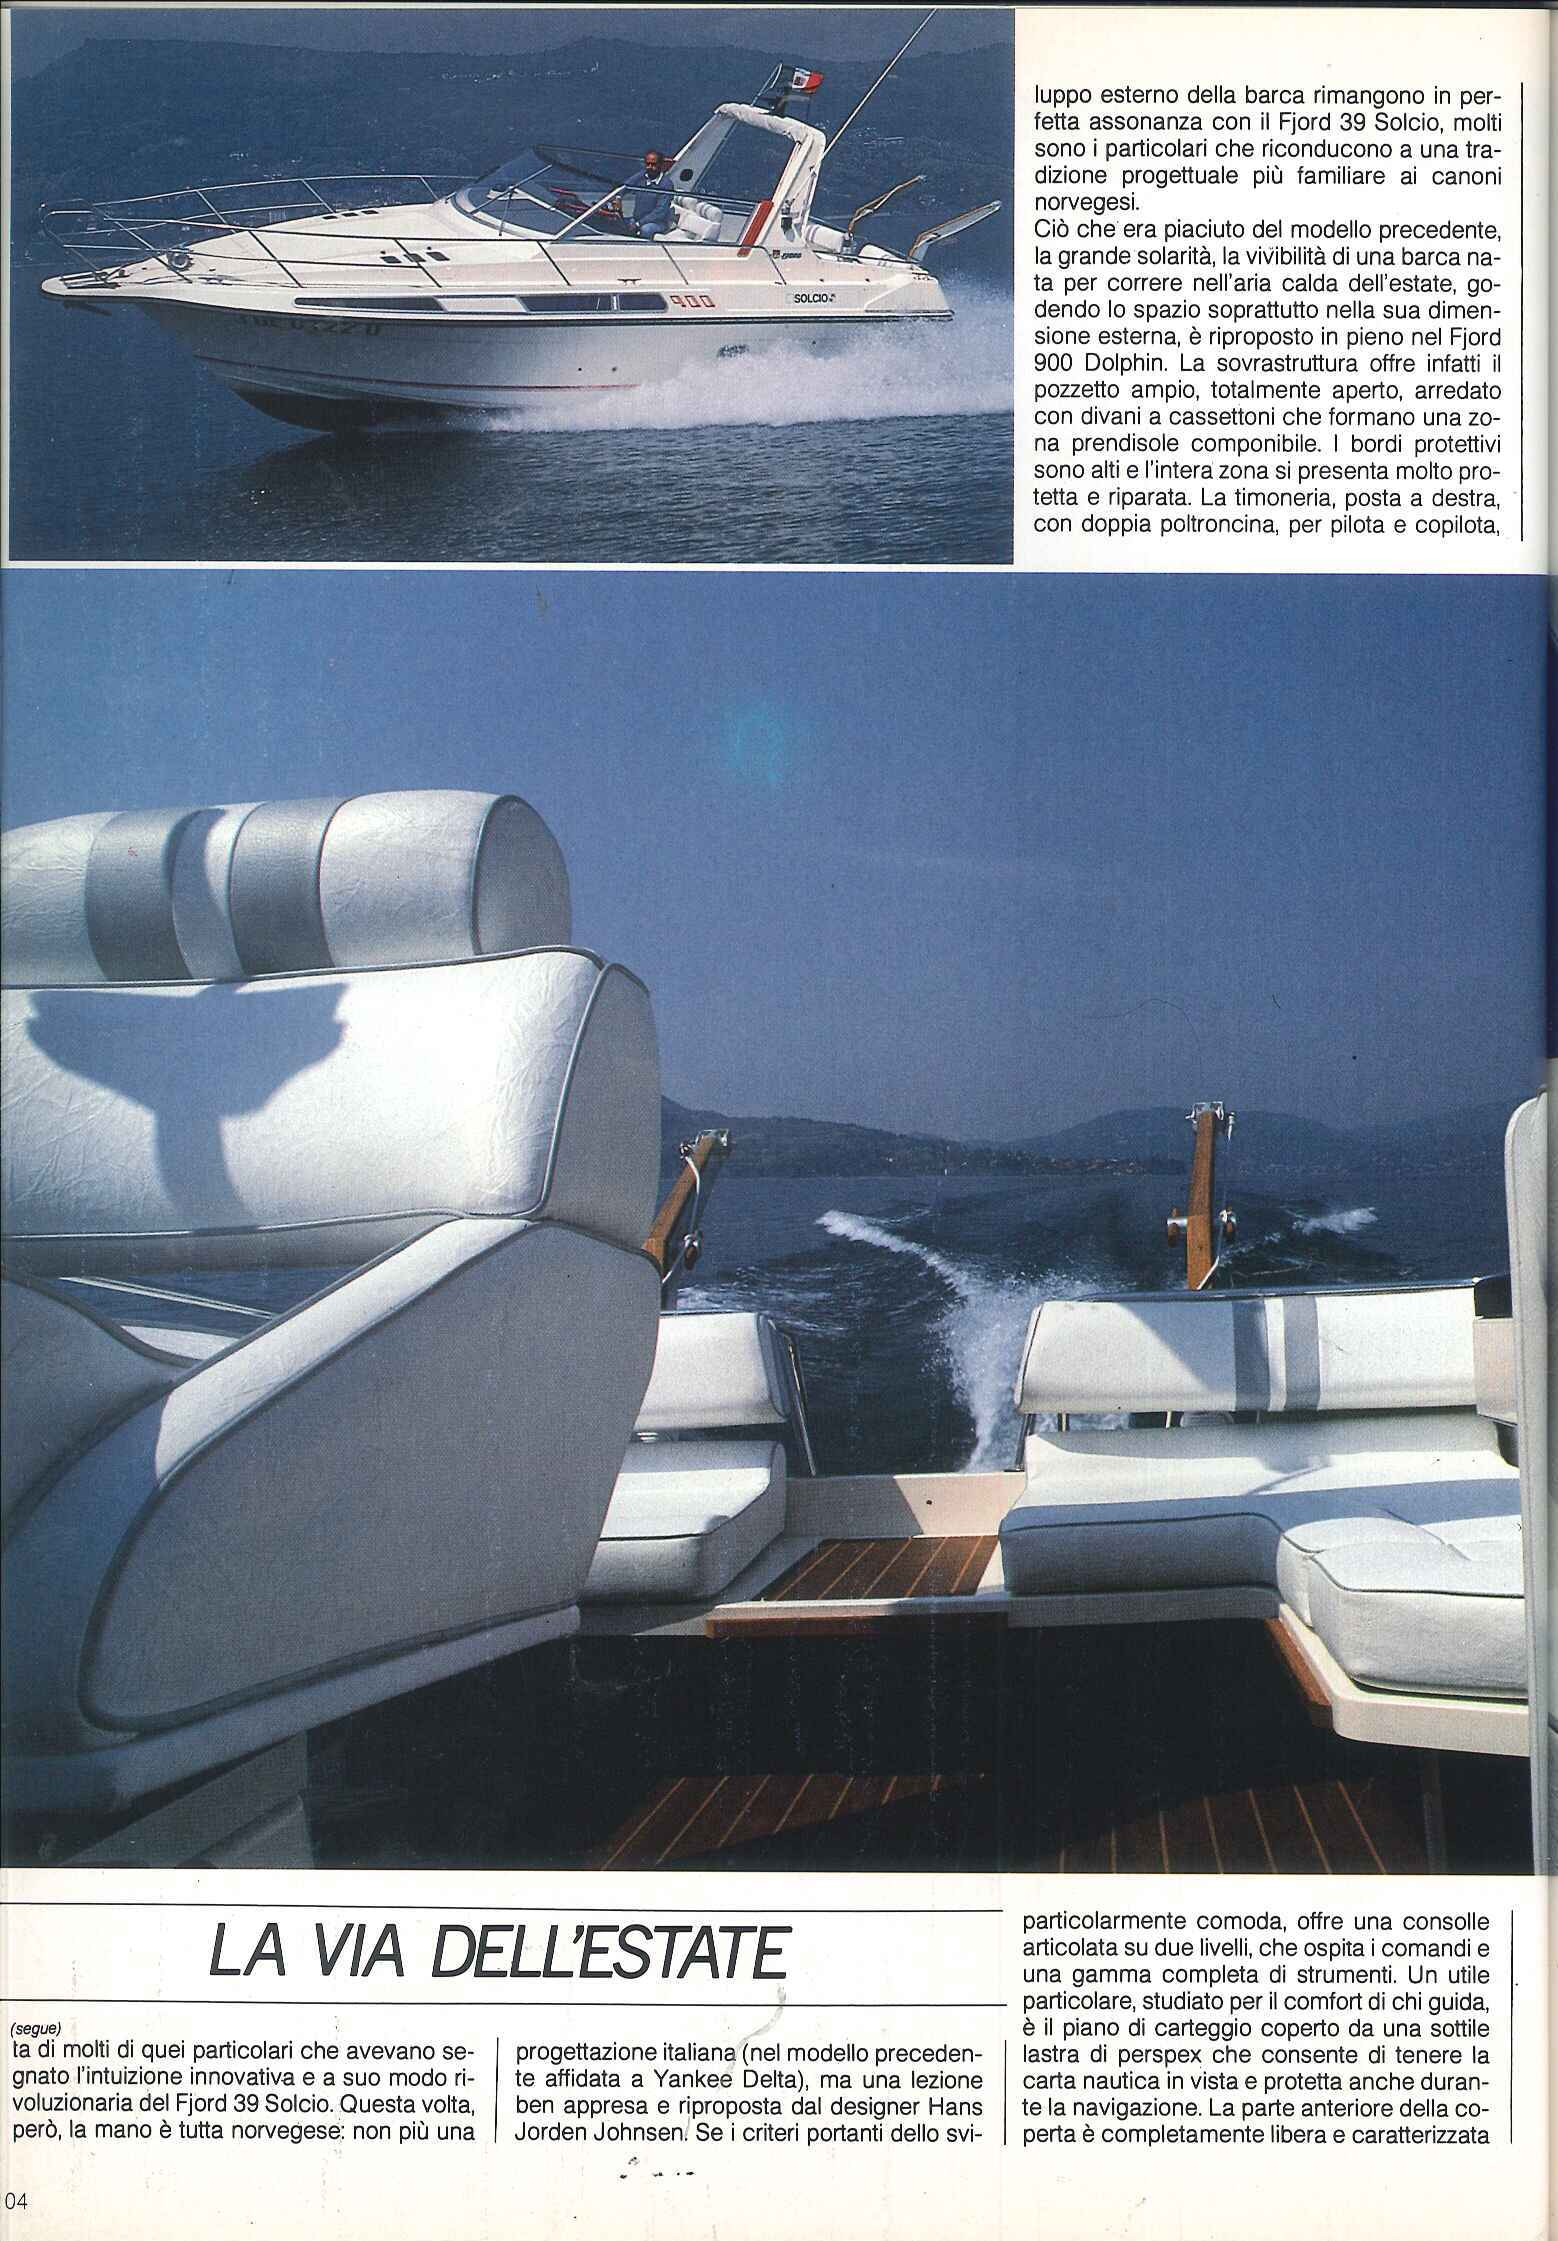 1987 07 PRESS FJORD 900 DOLPHIN UOMO MARE N°111(03).jpg